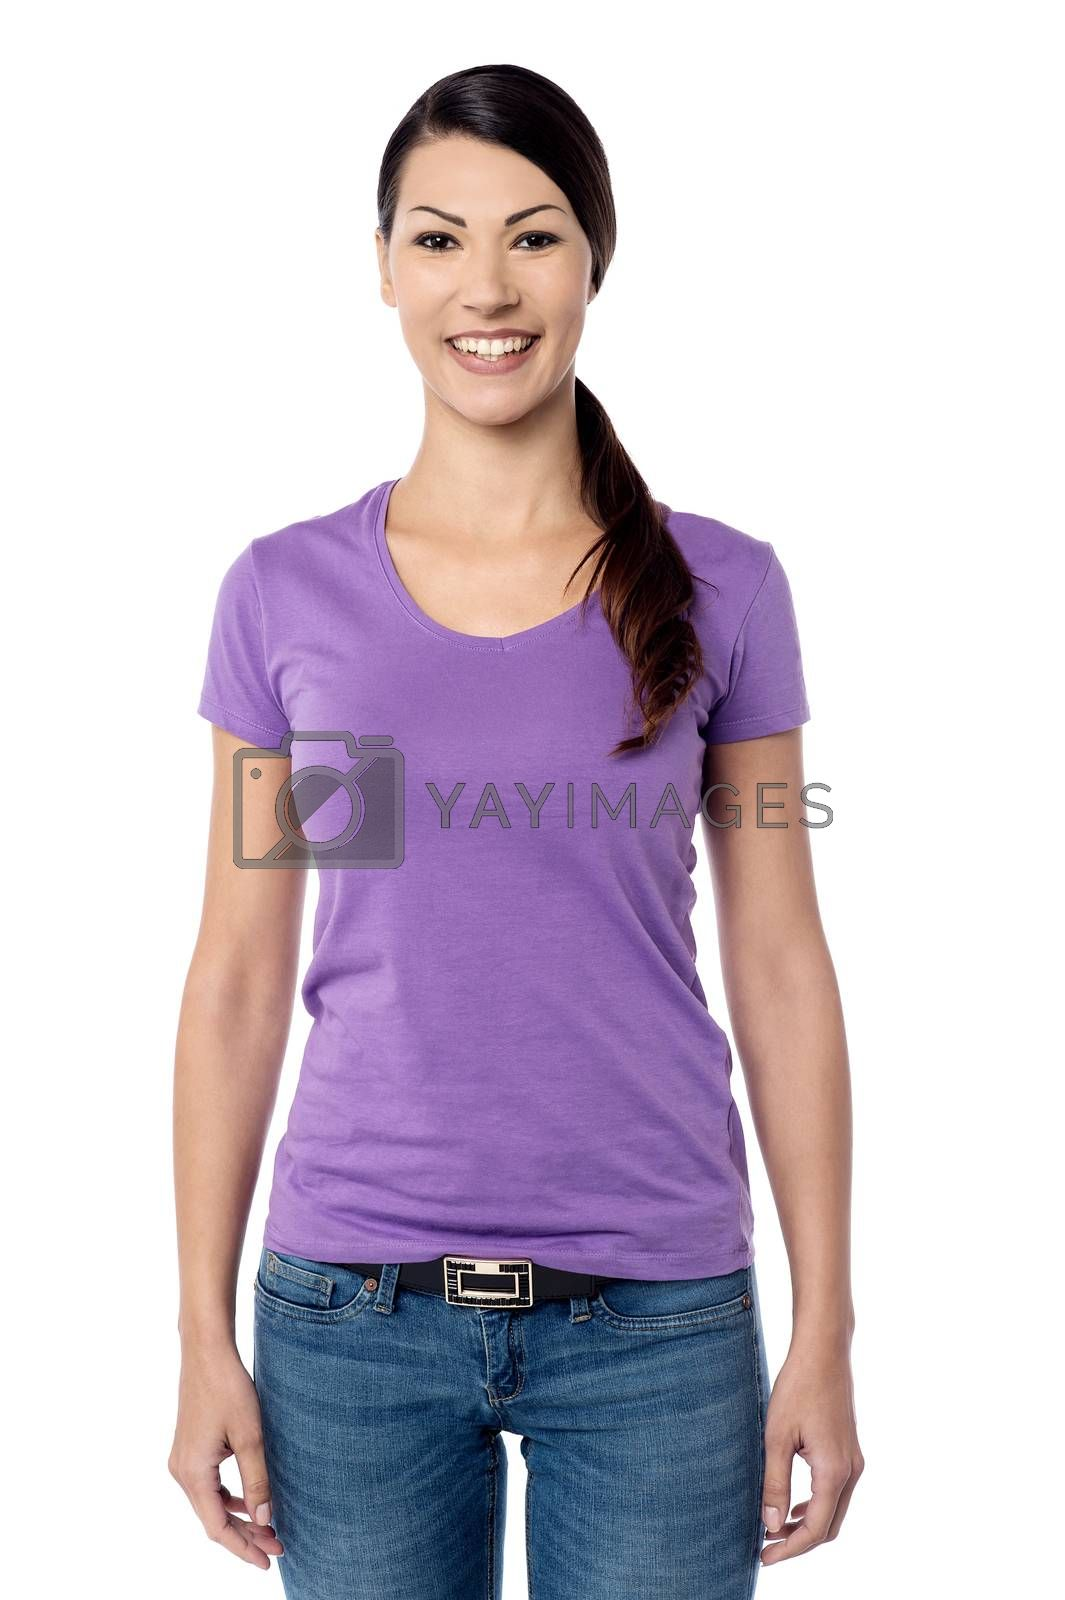 Casual pose of happy young woman over white